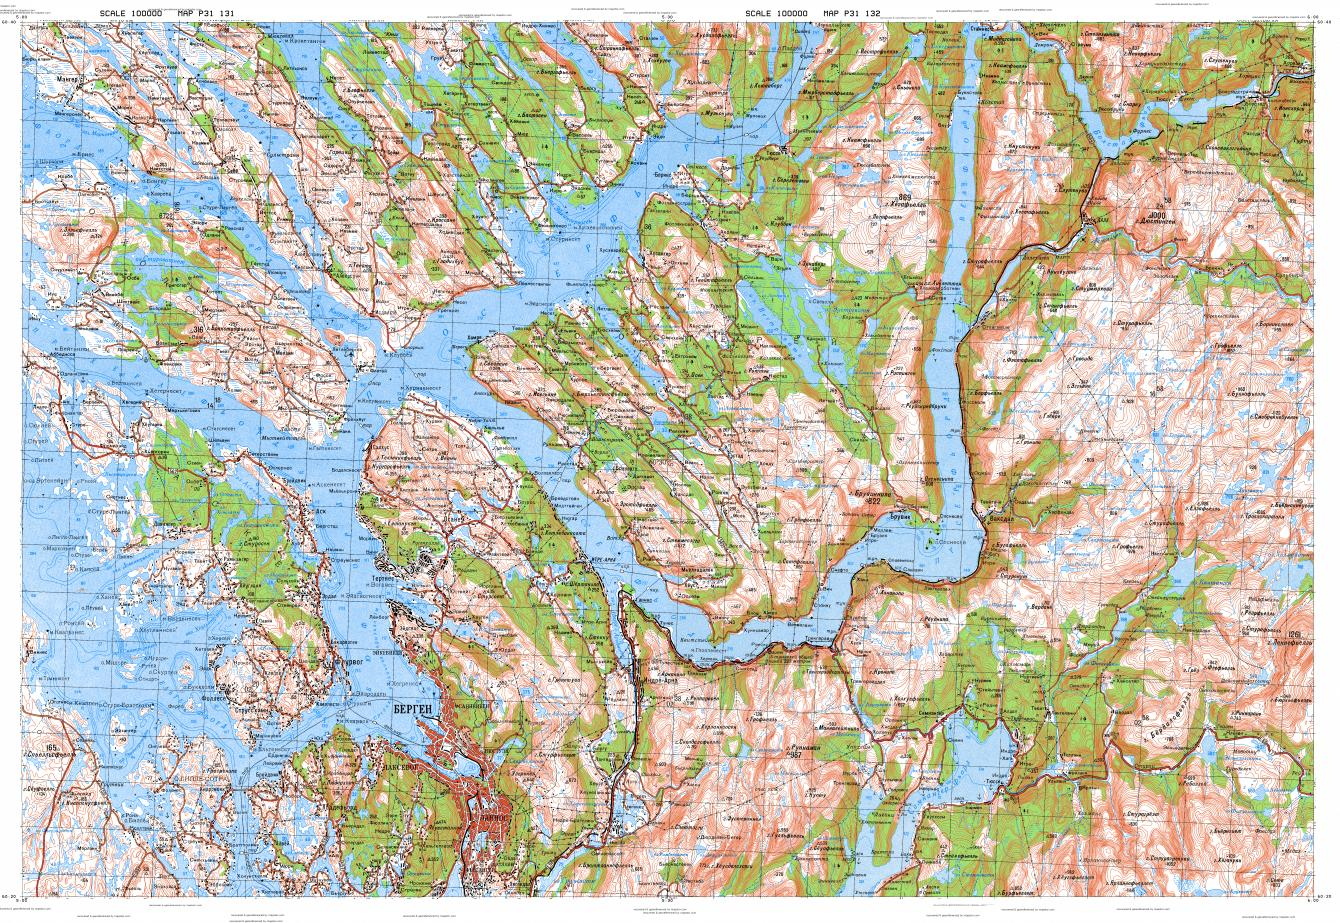 Download Topographic Map In Area Of Bergen Tysse Vaksdal - Norway topographic map